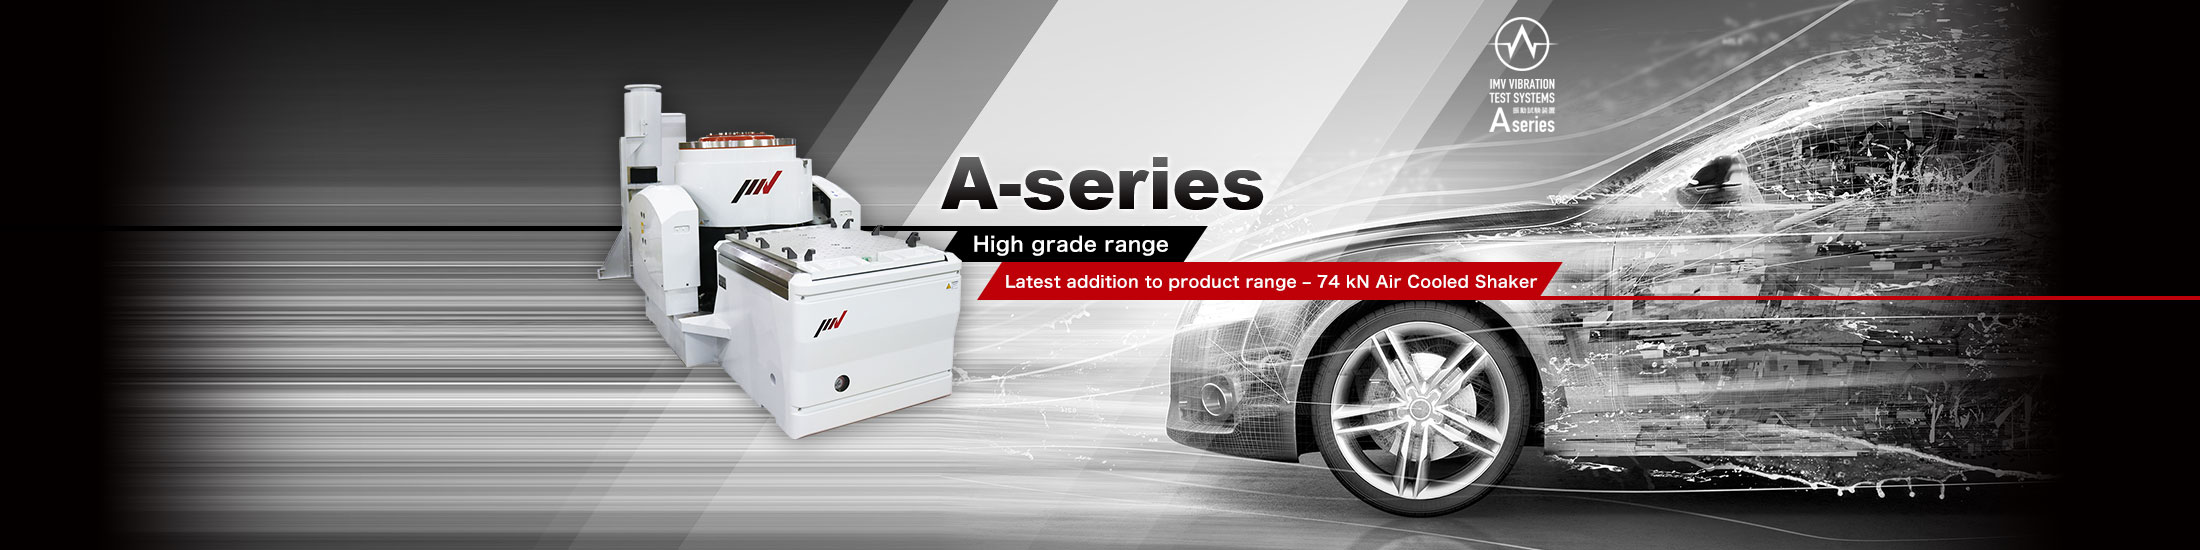 A-series High grade range Latest addition to product range – 74 kN Air Cooled Shaker